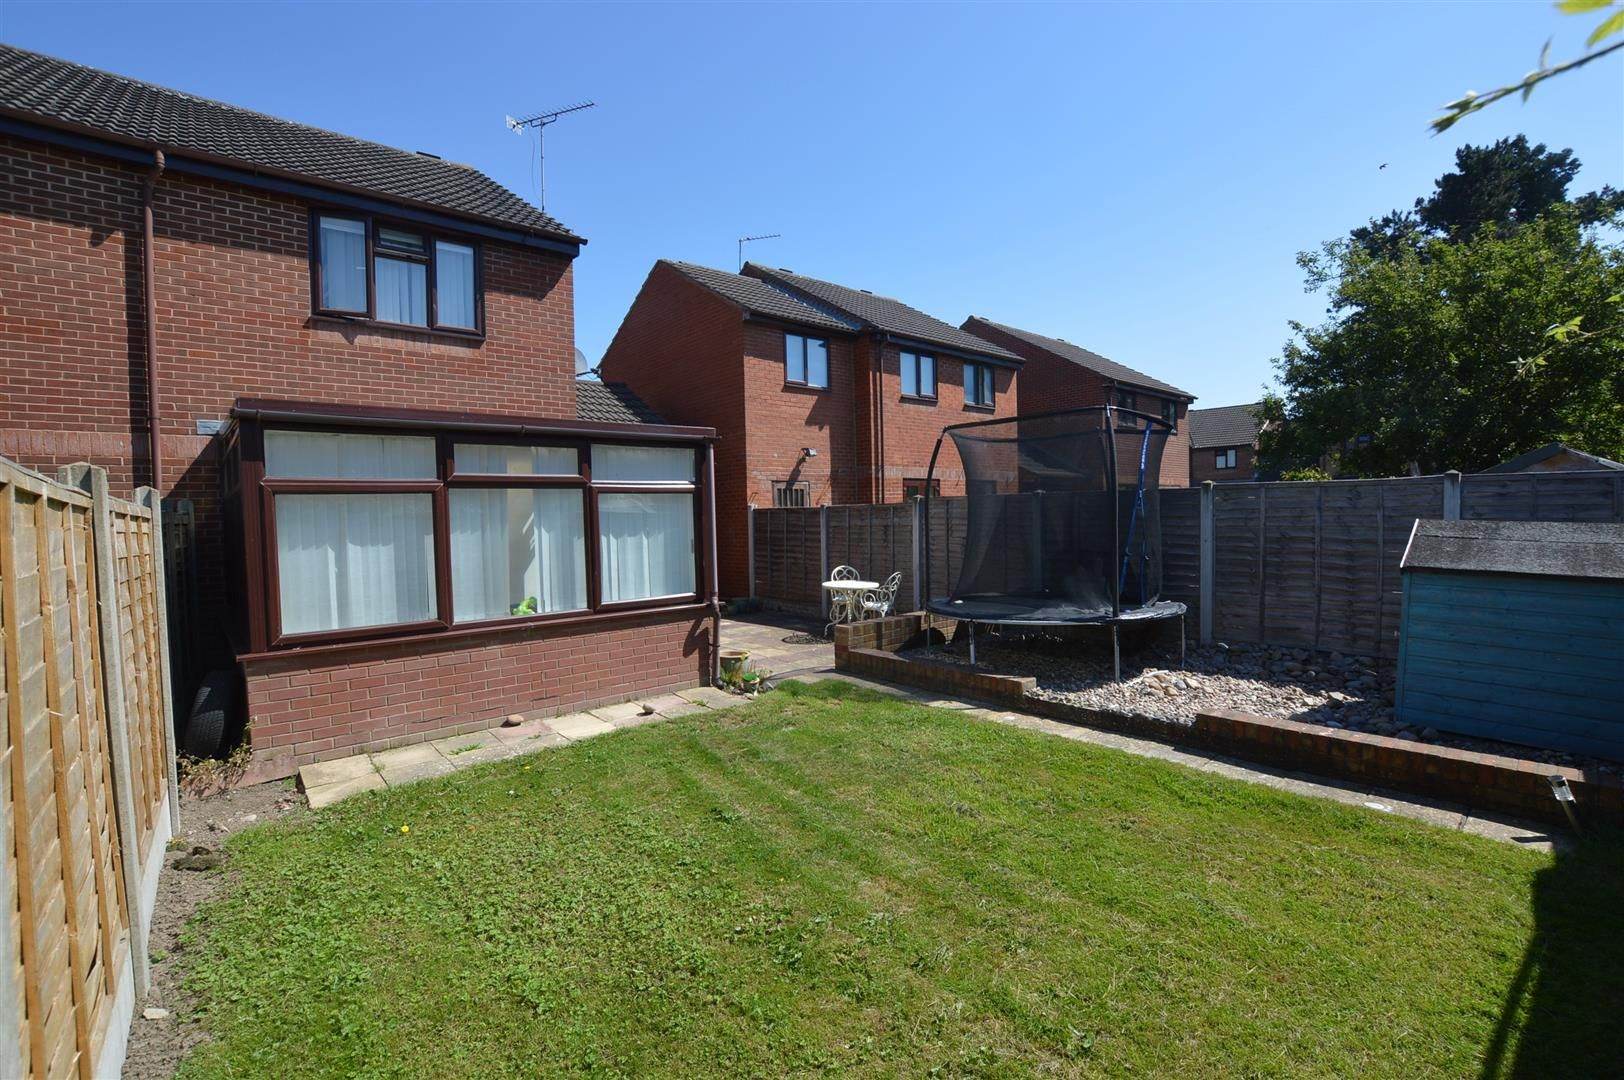 2 bed semi-detached for sale in Leominster  - Property Image 3